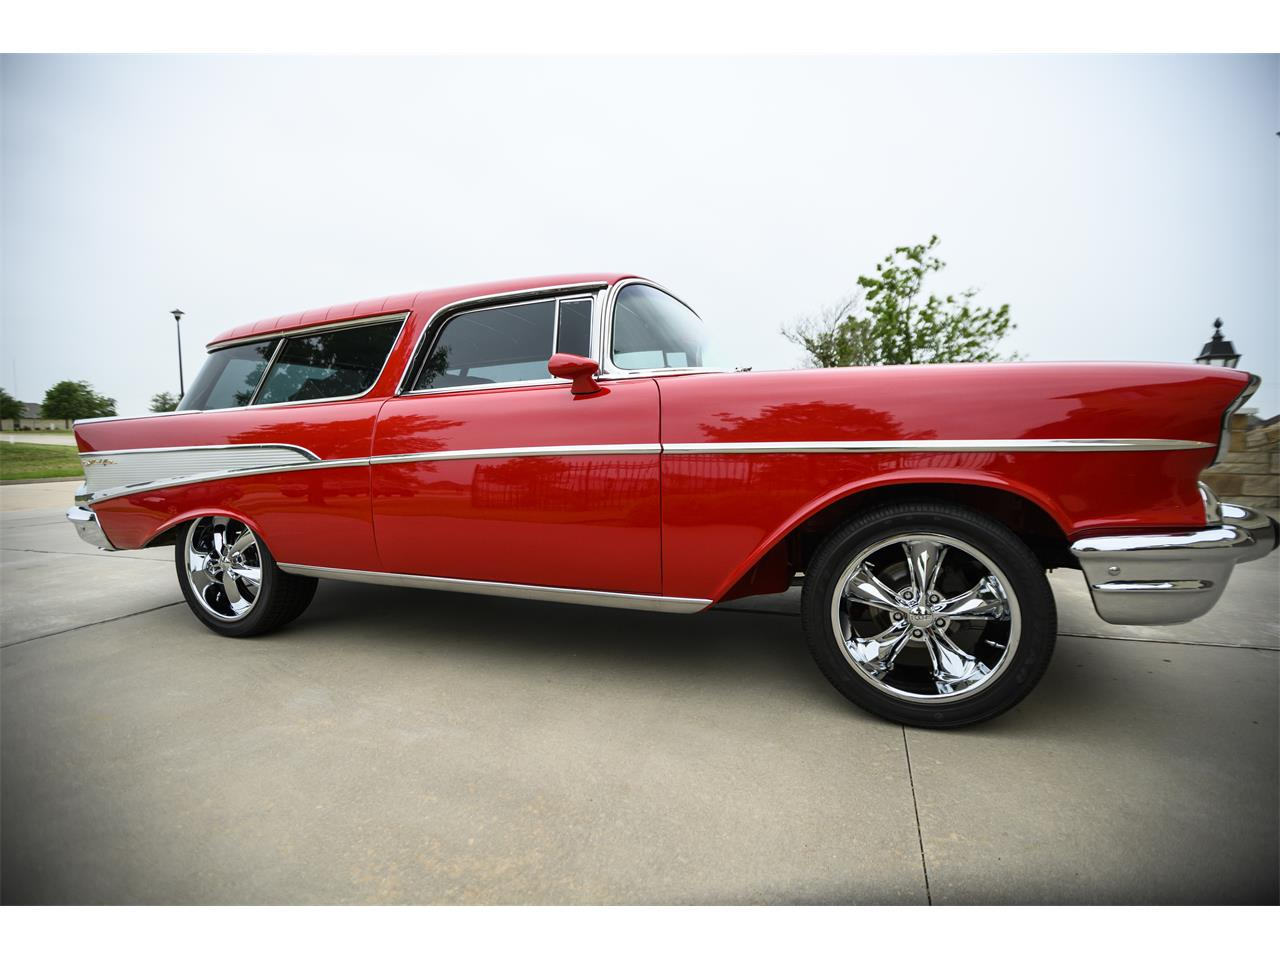 Large Picture of Classic '57 Chevrolet Bel Air Nomad - $67,400.00 Offered by a Private Seller - PZTB